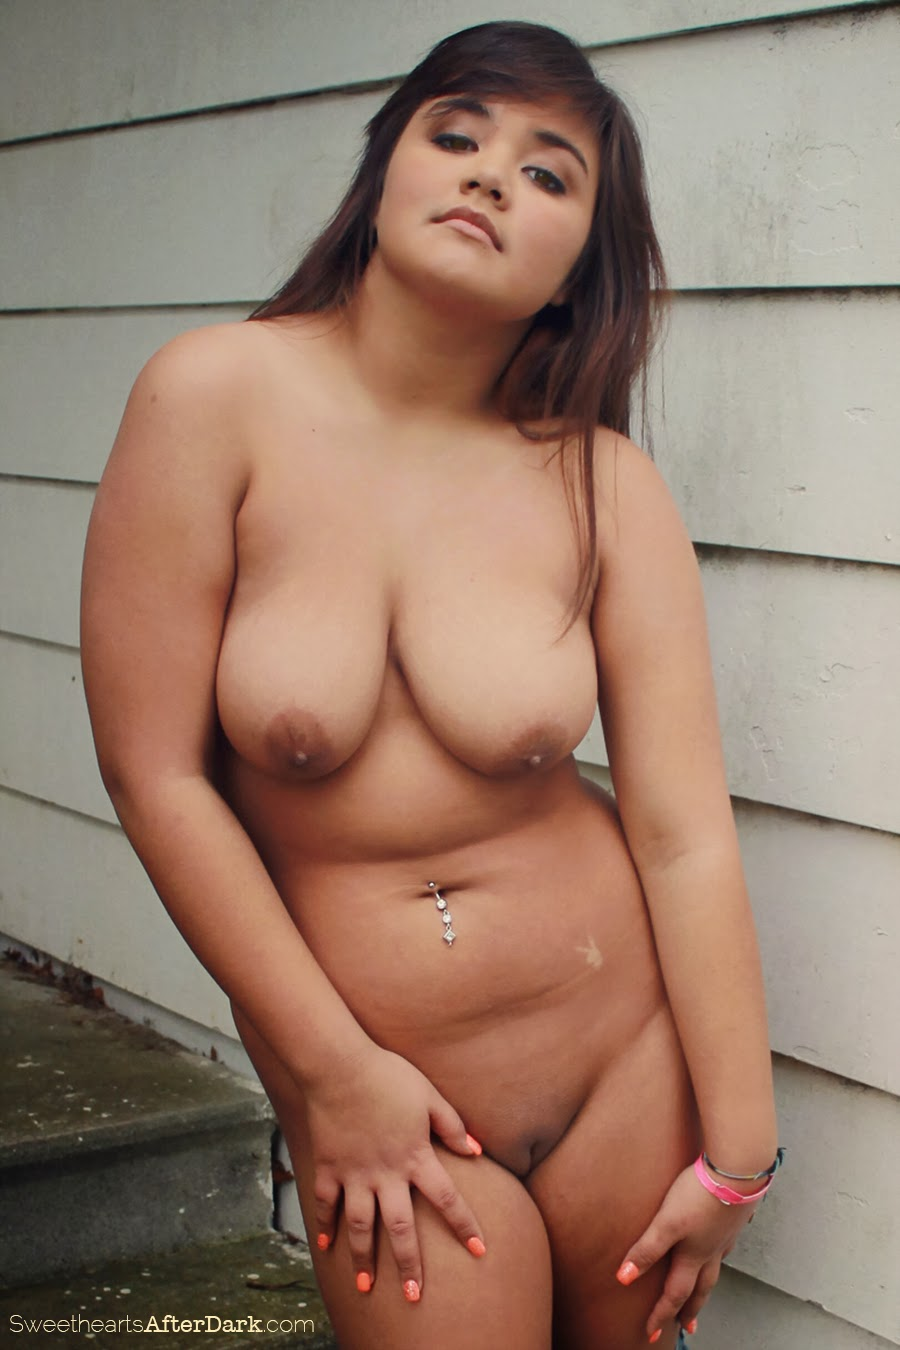 drunken nude college girls